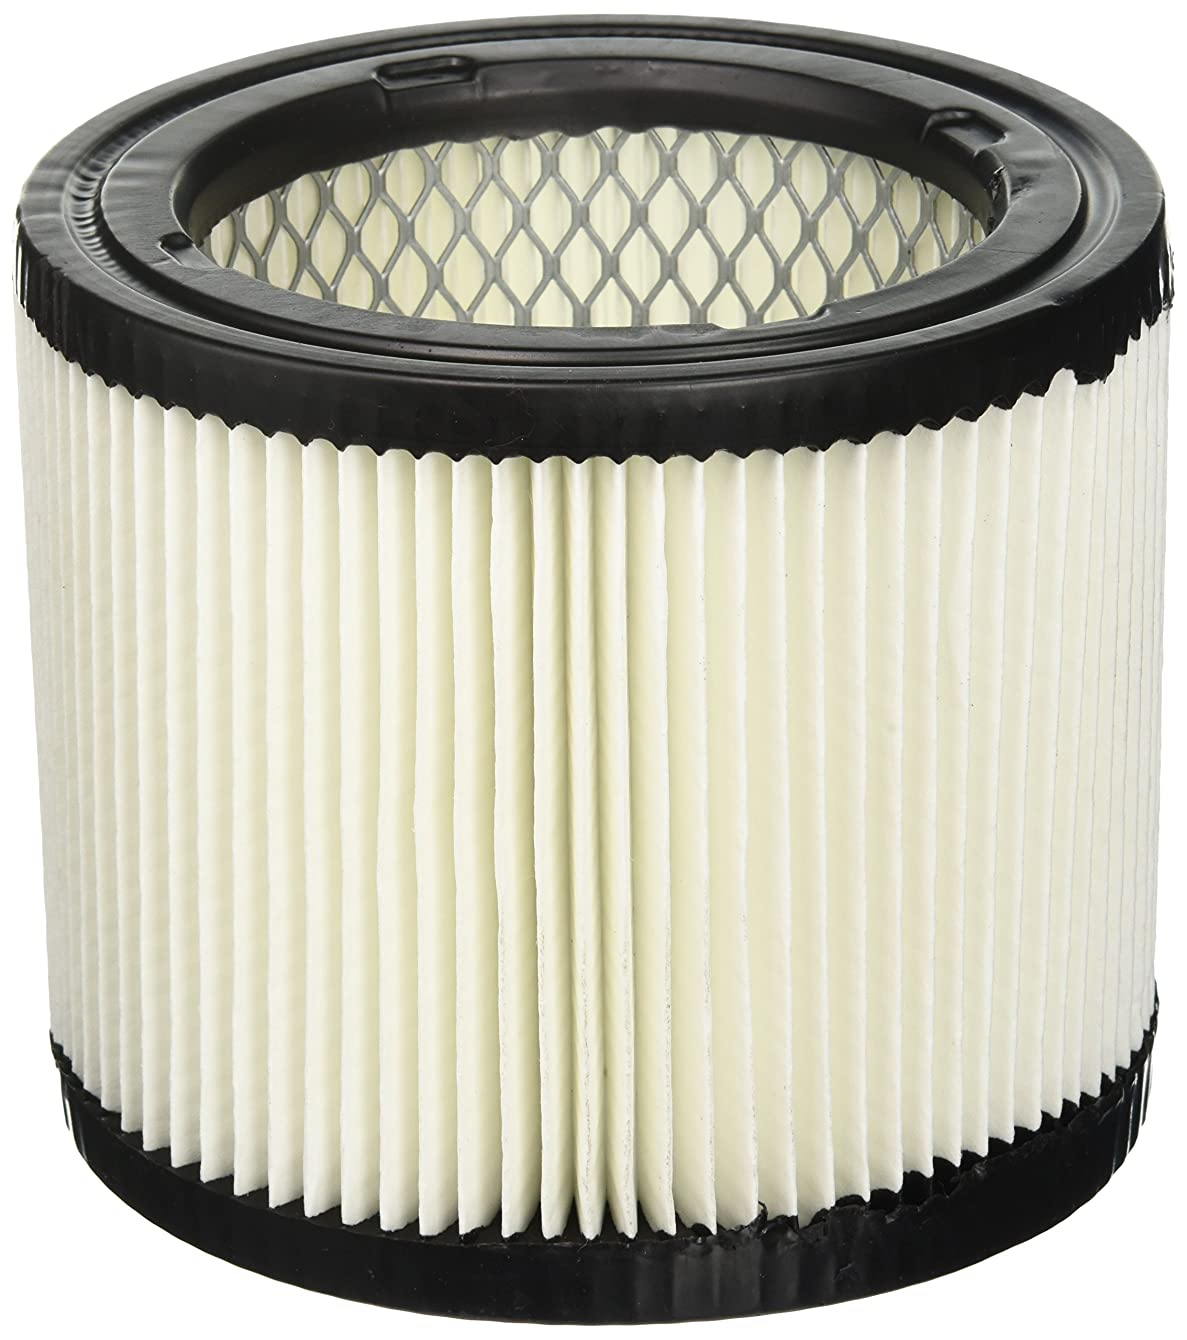 Shop Vac Wet/Dry Cartridge Filter Pack of 4,  903-98-00